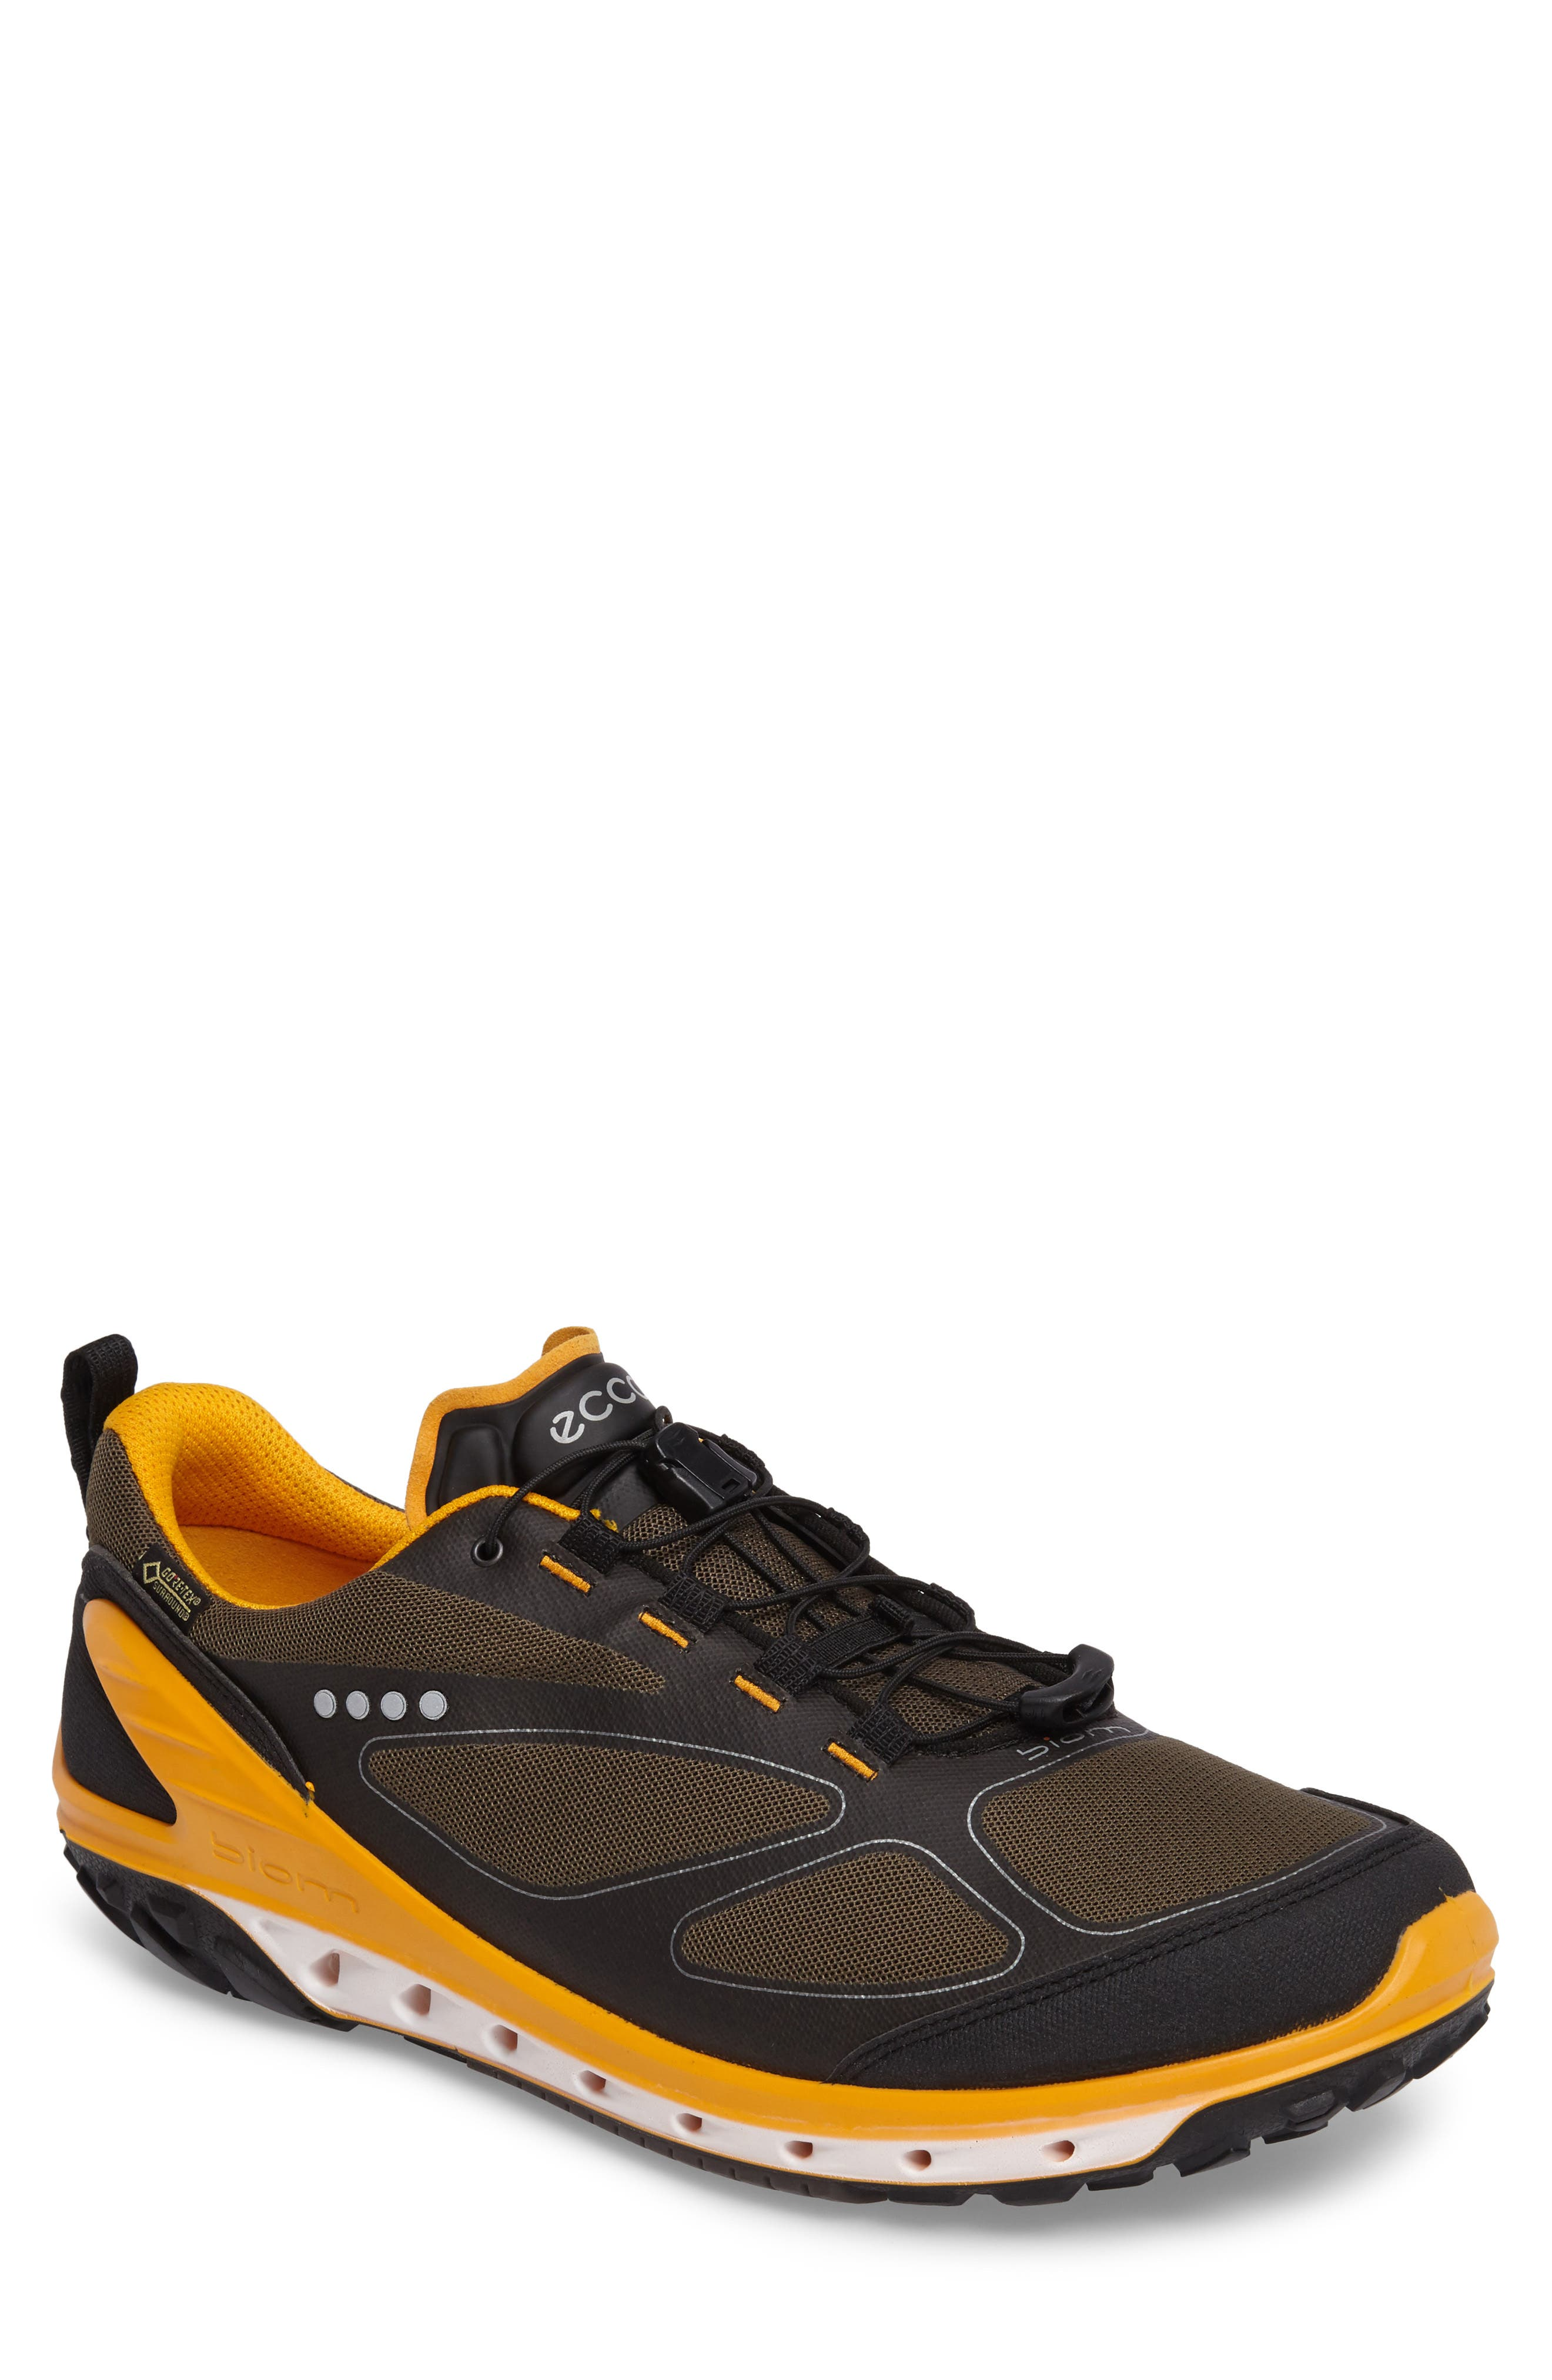 BIOM Venture GTX Sneaker,                         Main,                         color, Black/ Tarmac